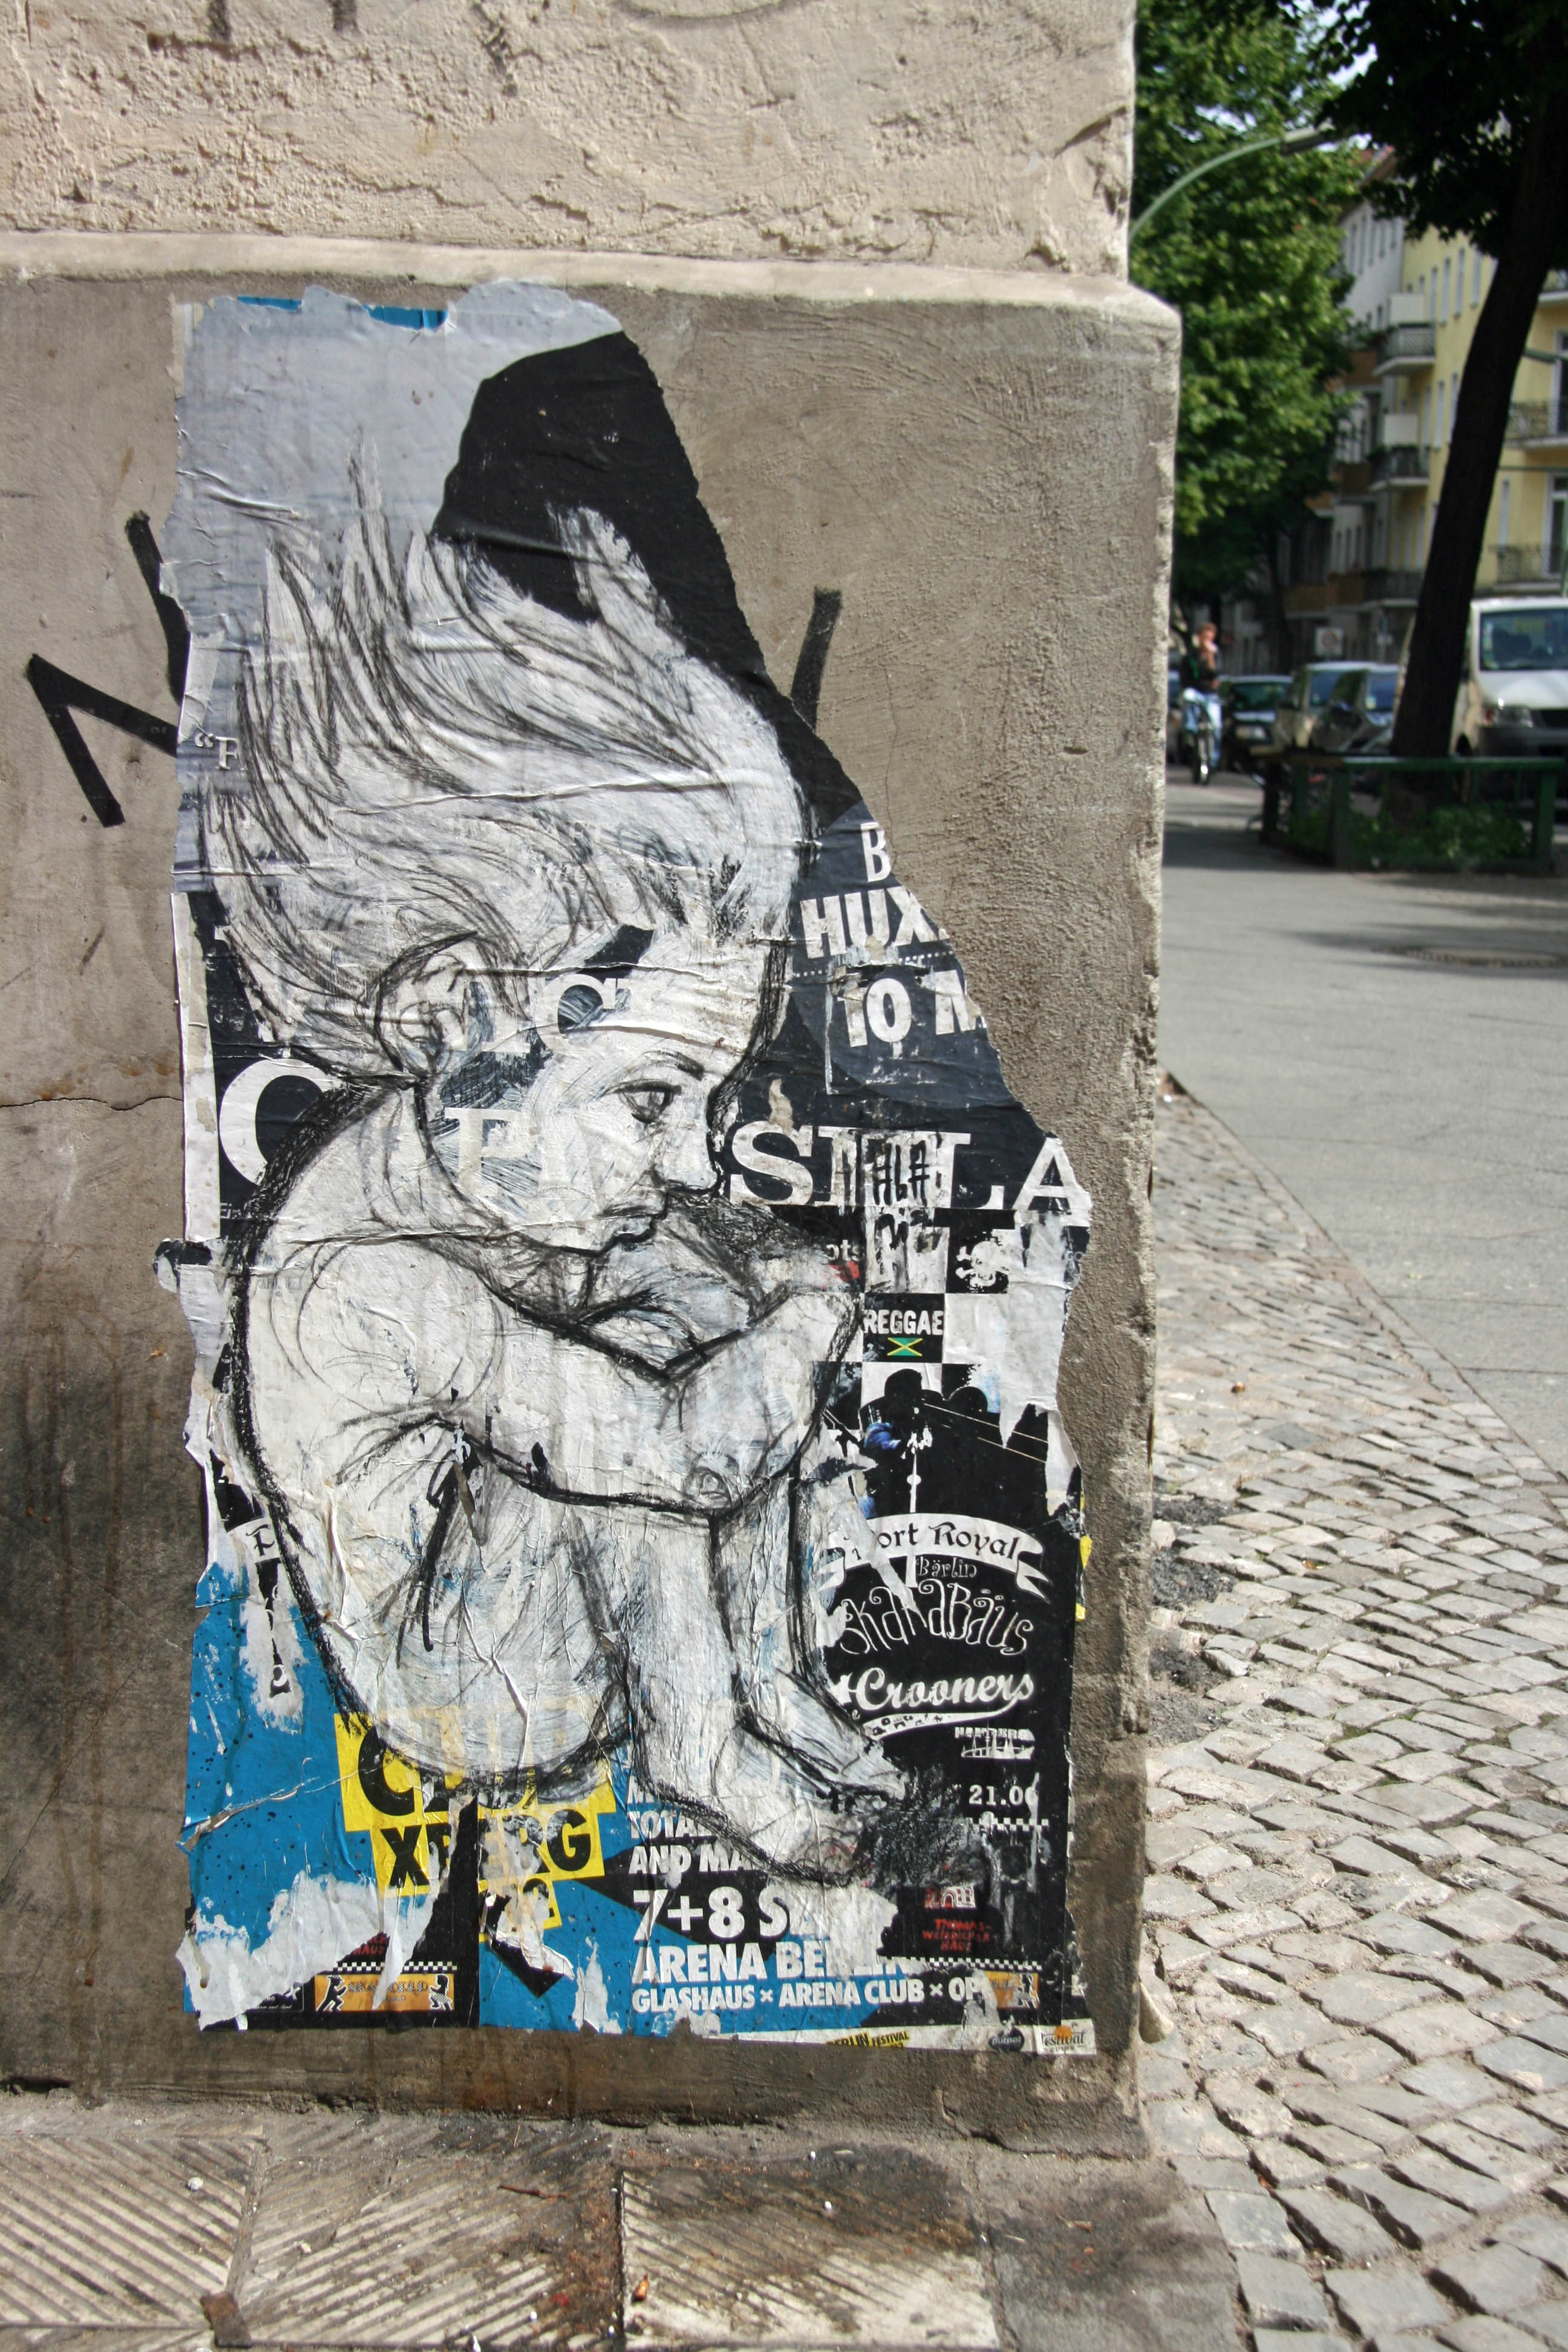 Child: Street Art by ALANIZ in Berlin